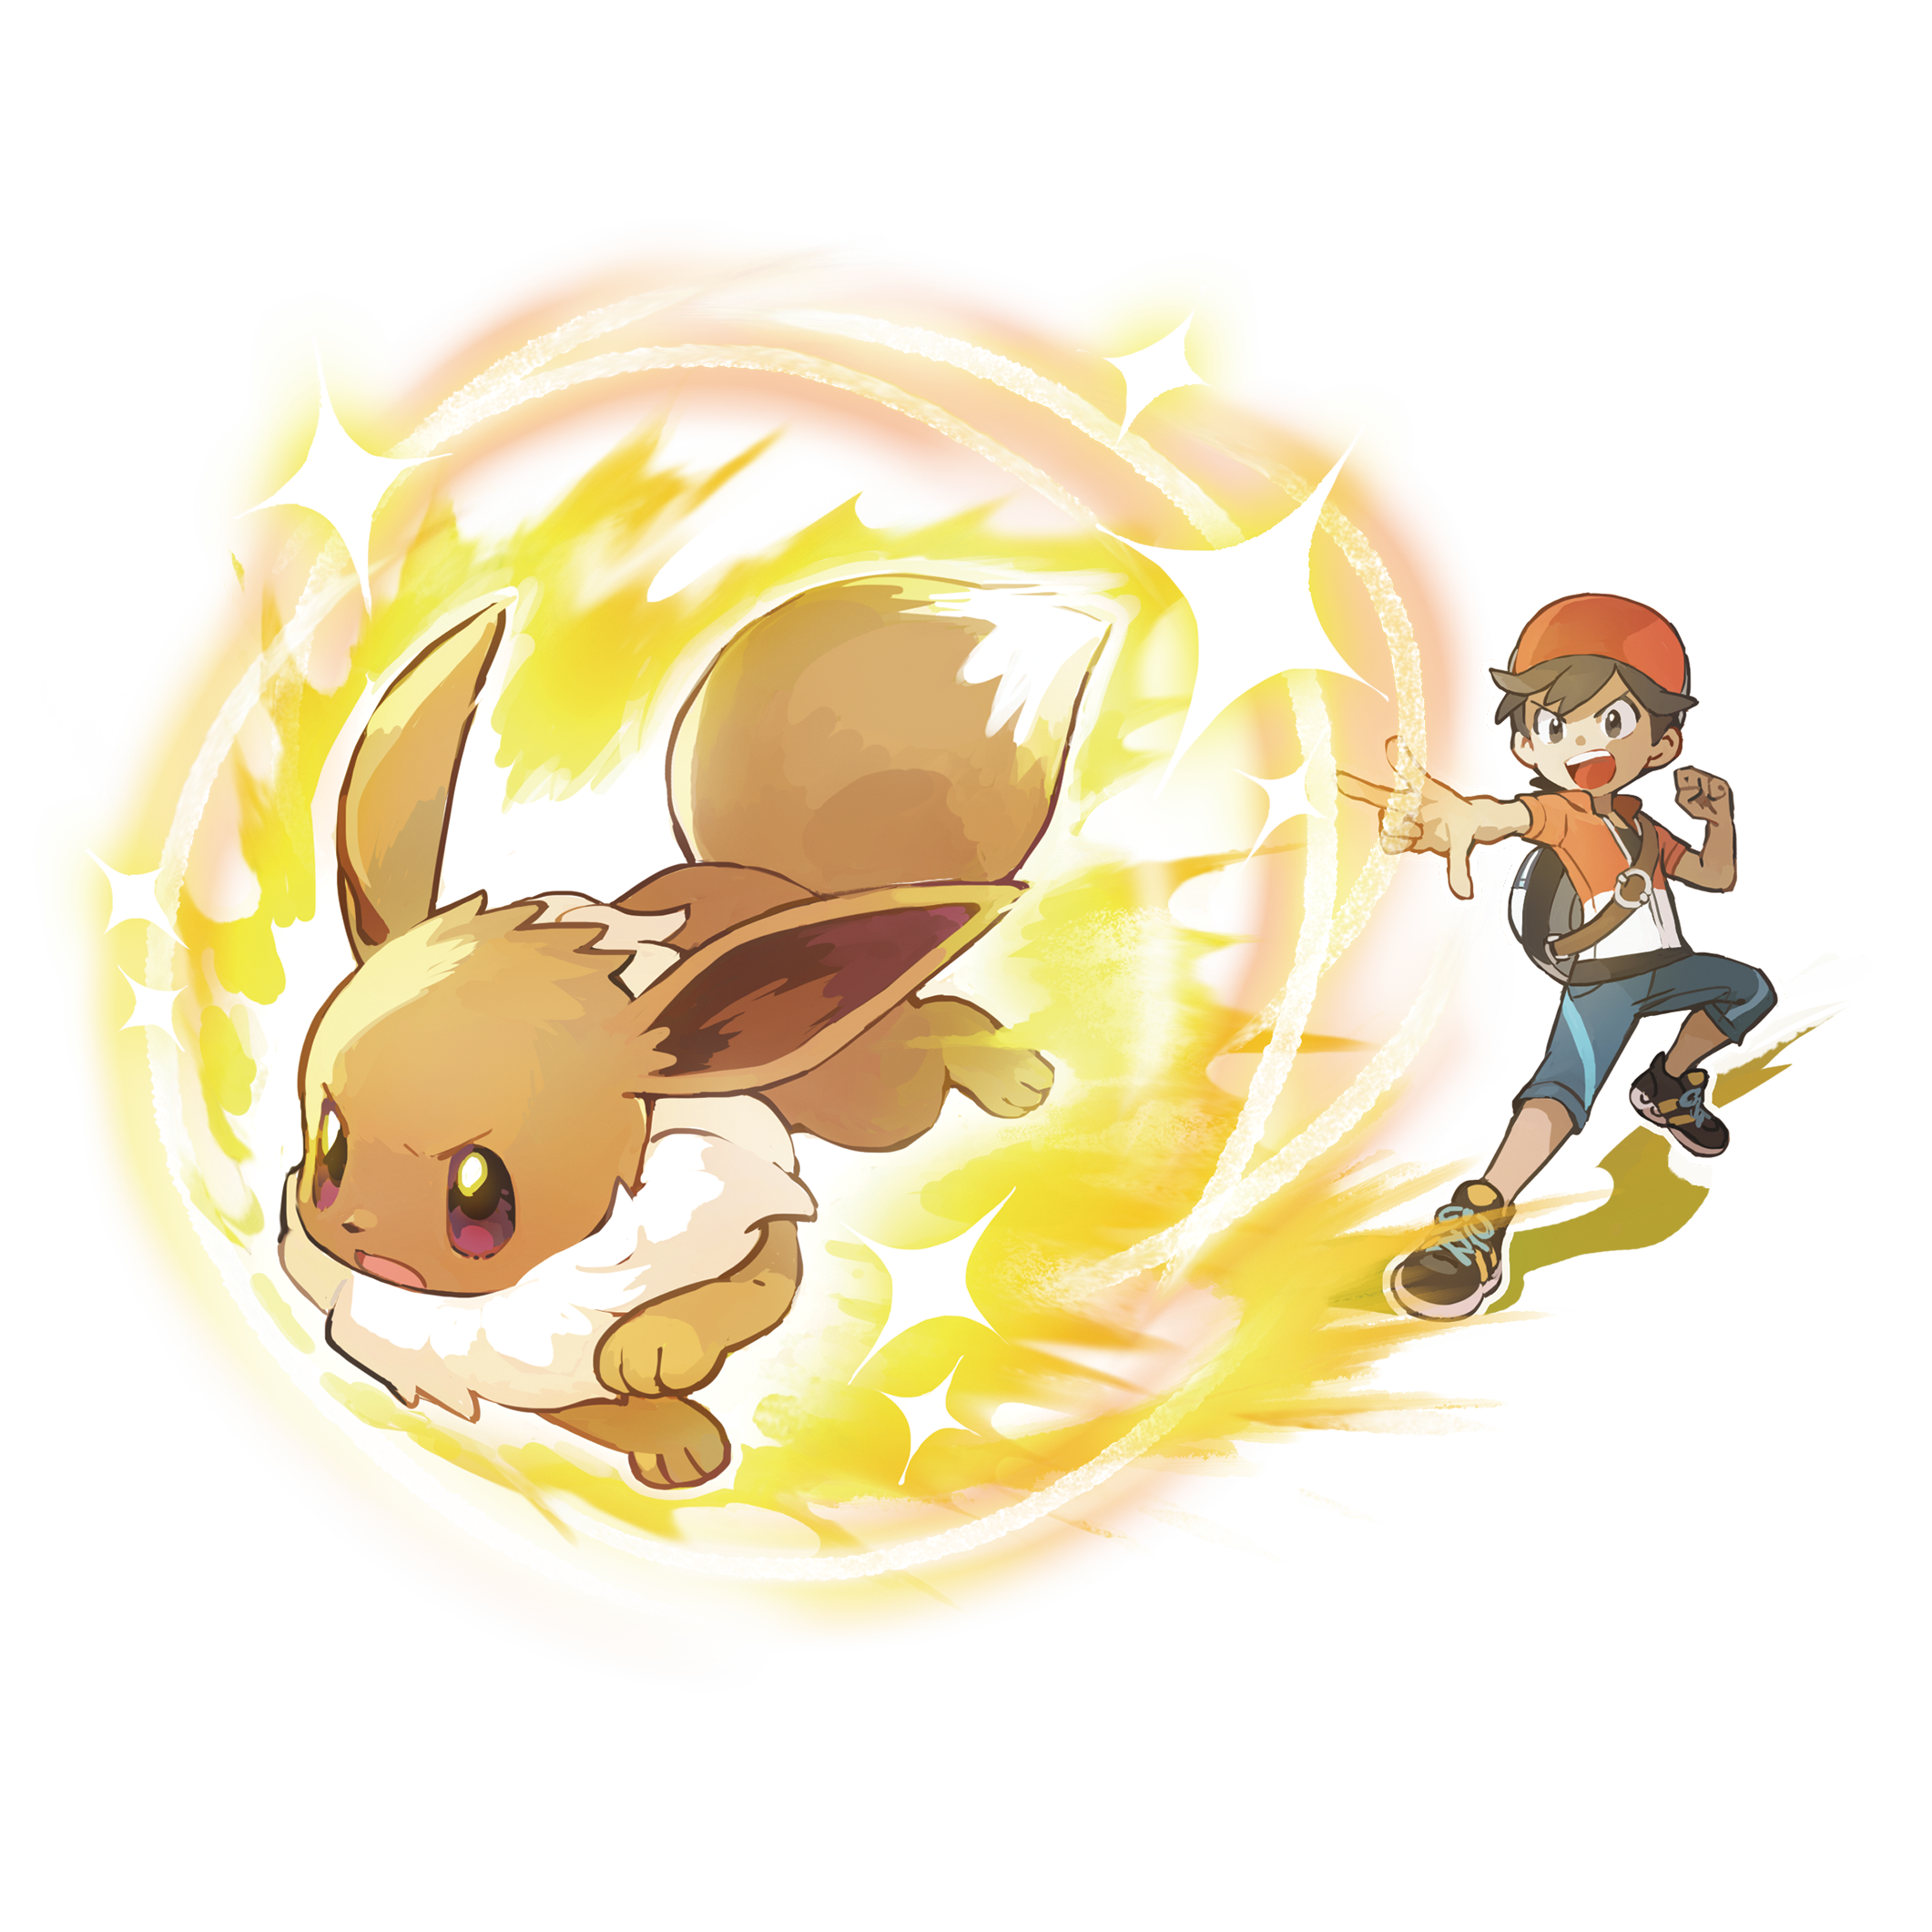 Boy Chase and Eevee Render (Pokemon Let's Go).png